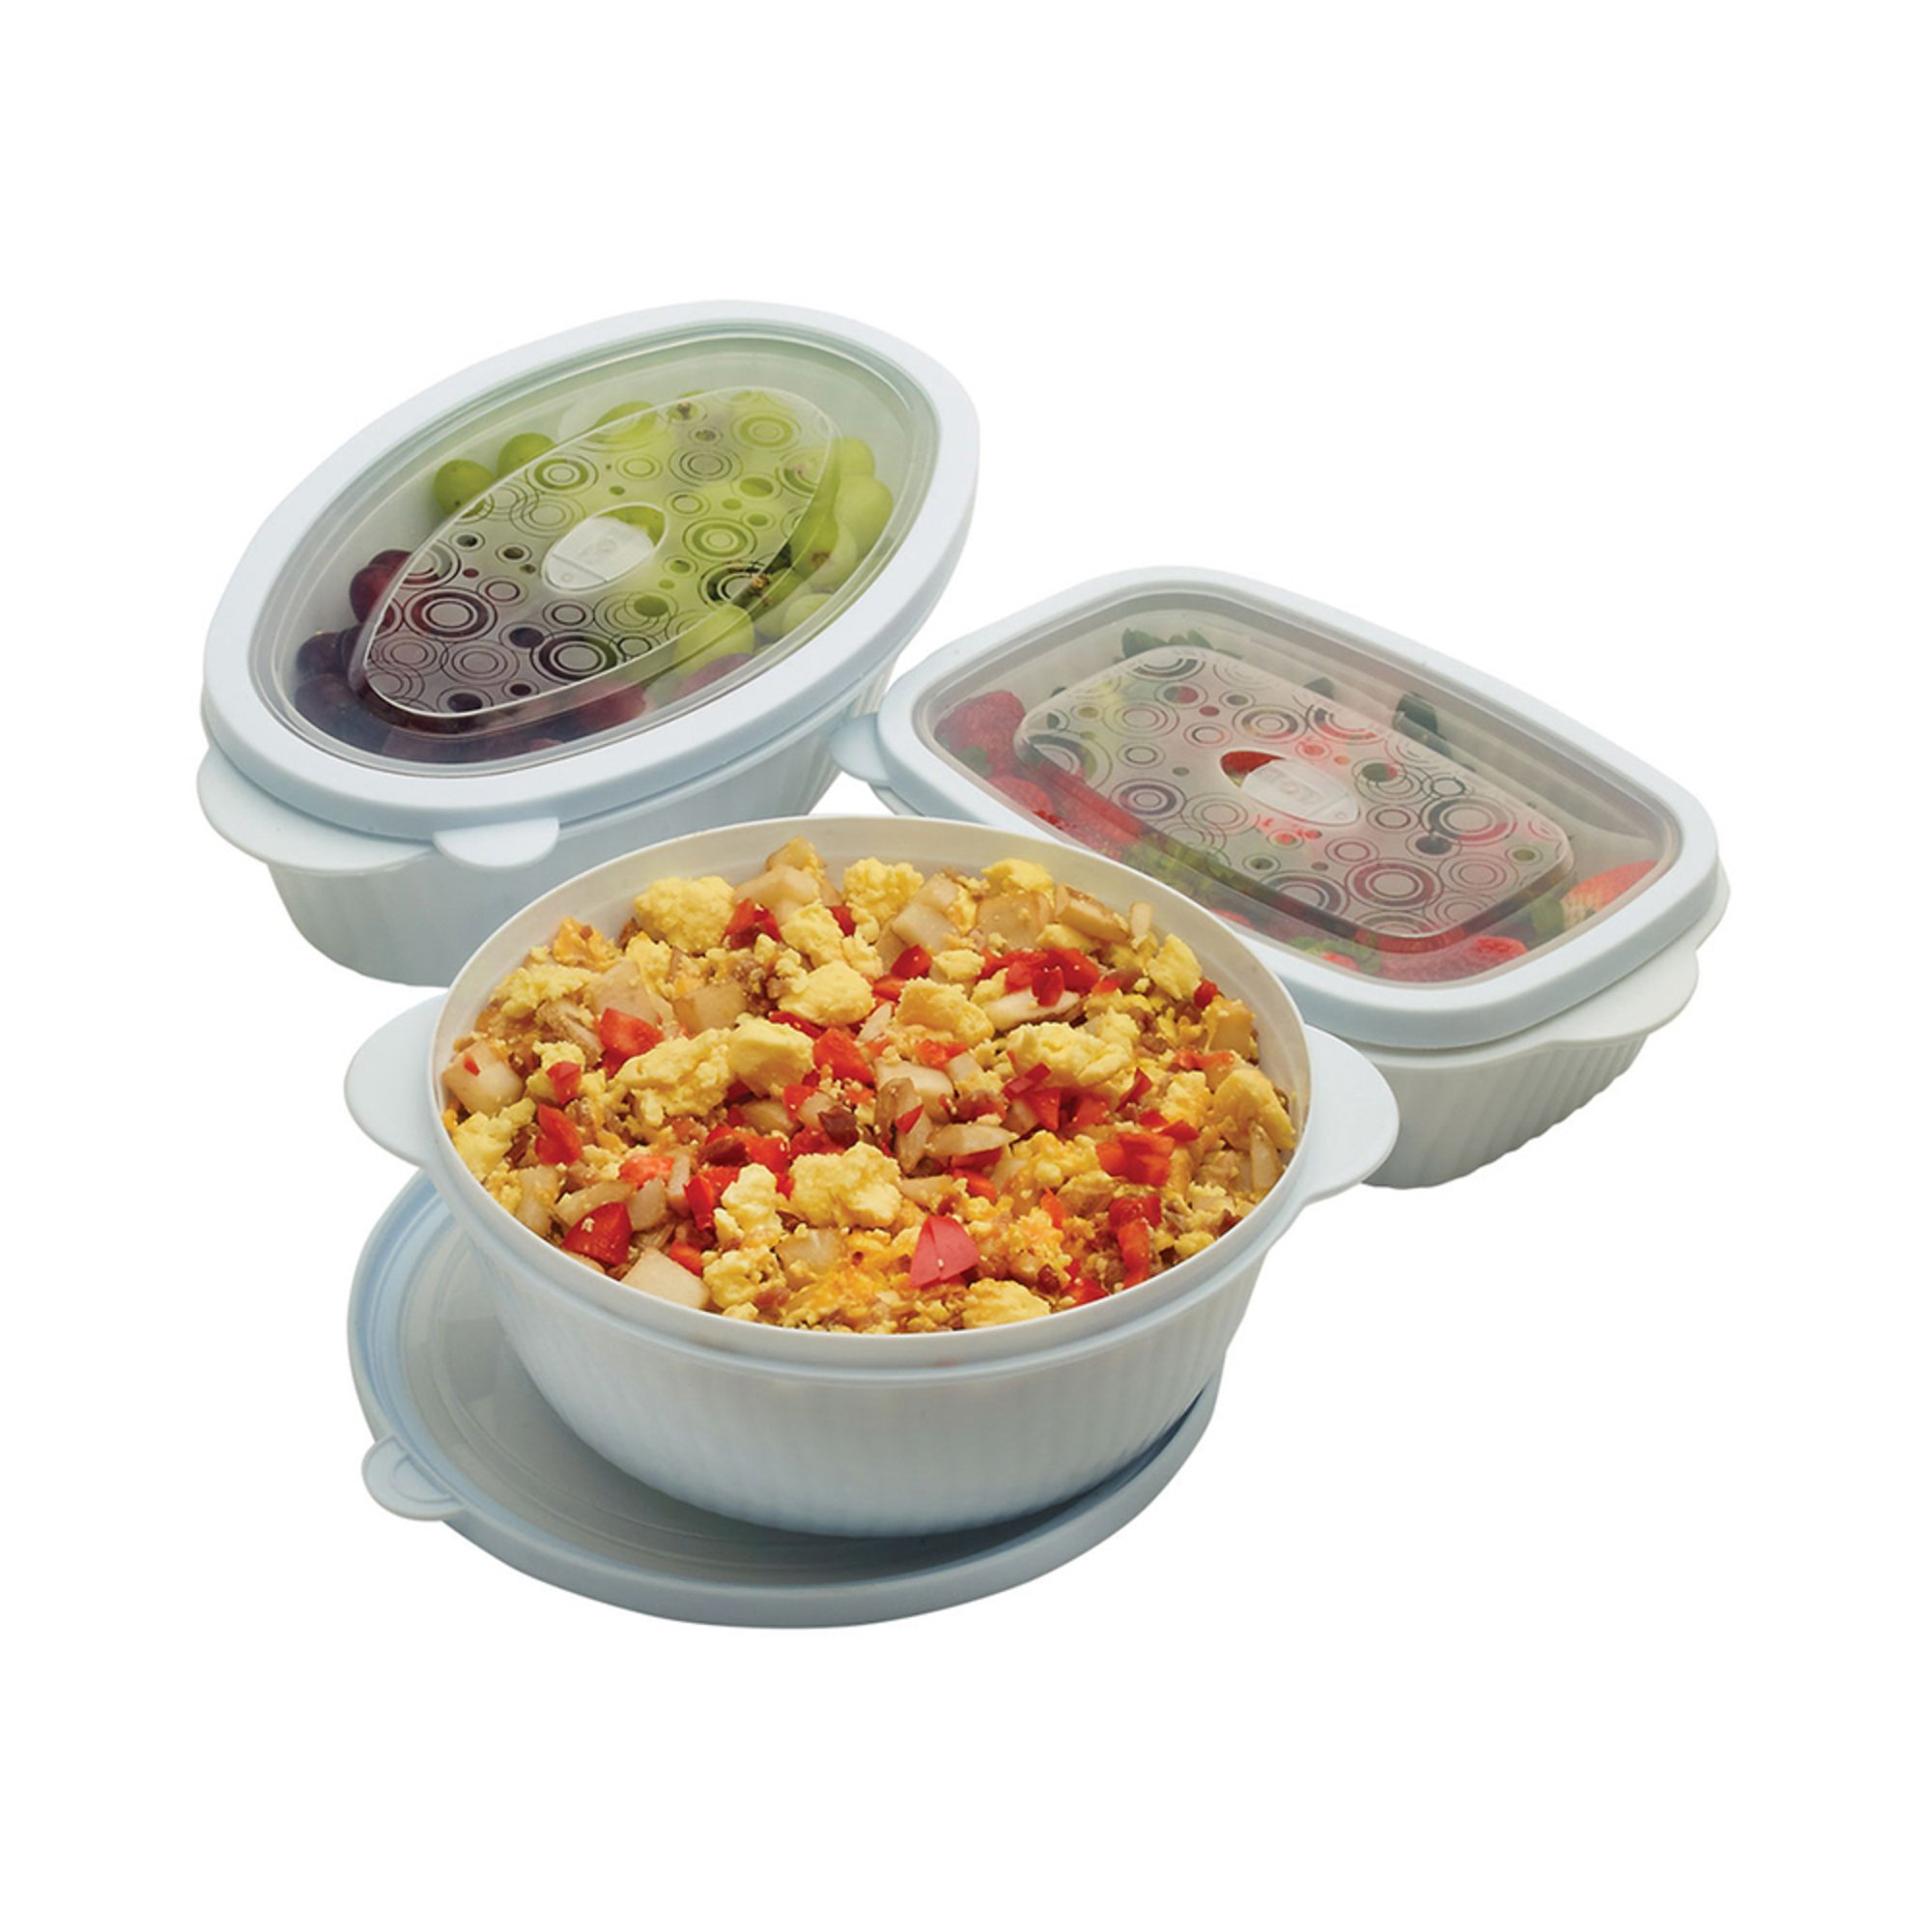 Kitchen Table With Food: Good Cooks 6-piece Table Ready Food Storage Set